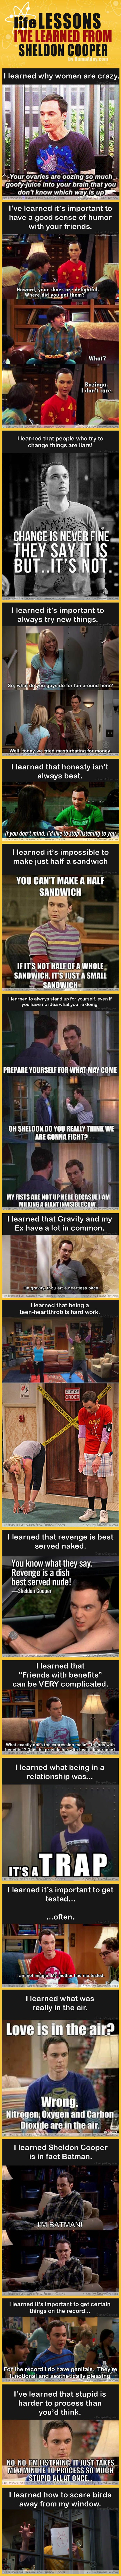 Dump A Day Life Lessons I Learned From Sheldon Cooper - 24 Pics